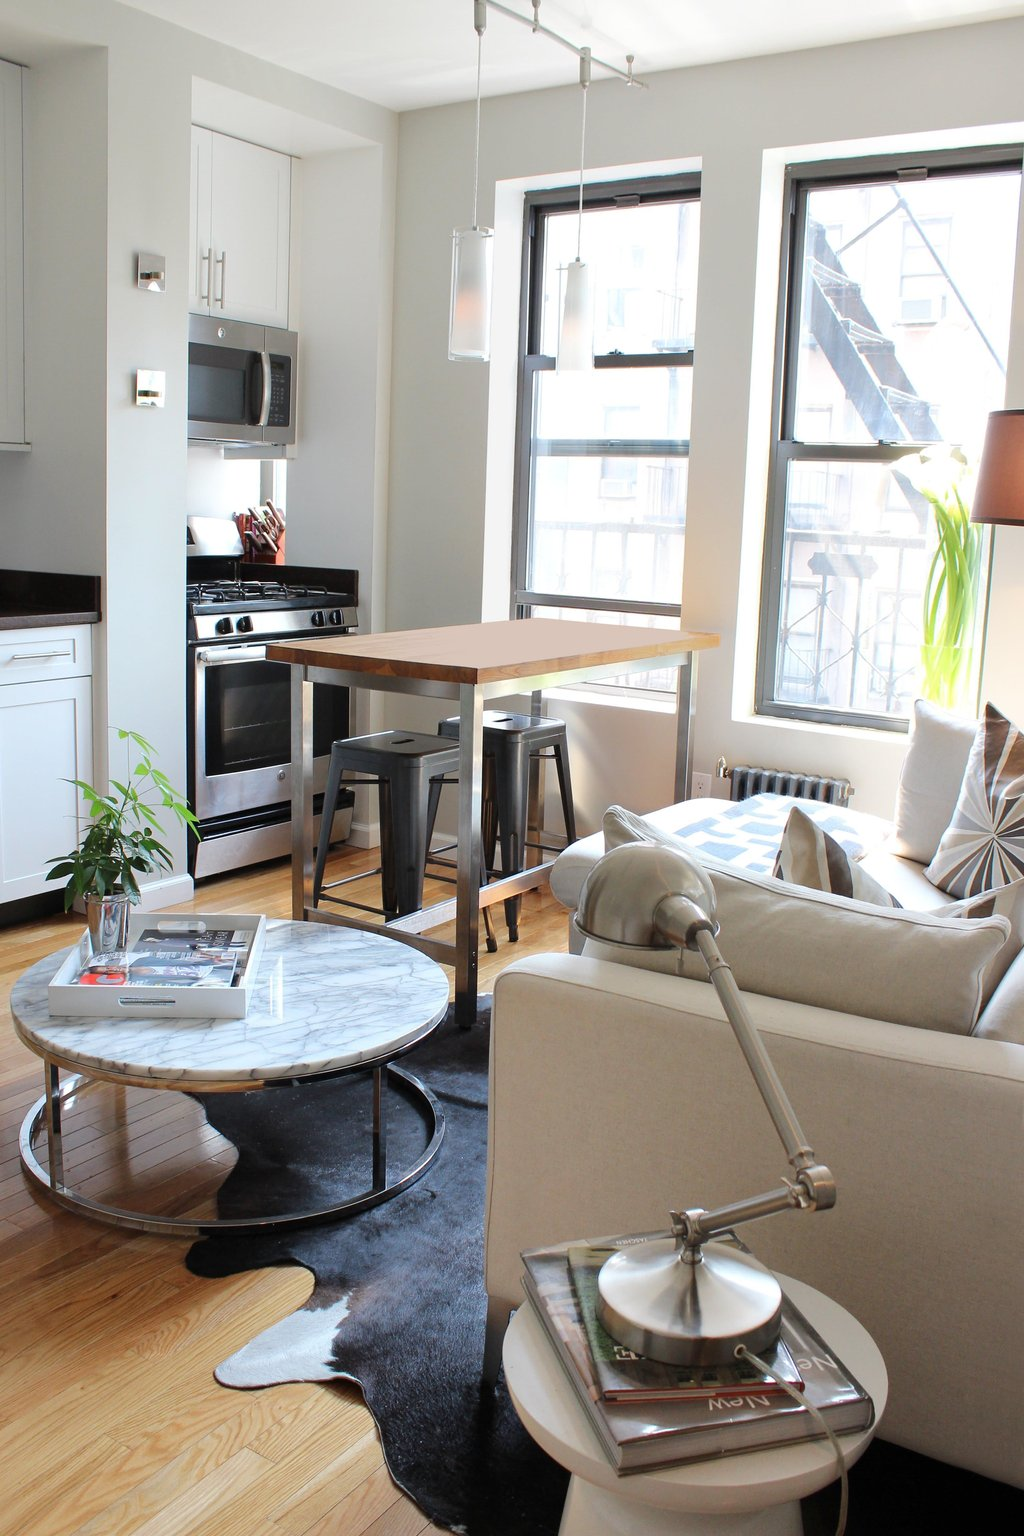 Small Space Superstars Top Tour Tiny Apartment How To Installing Wine Cooler Cabinet